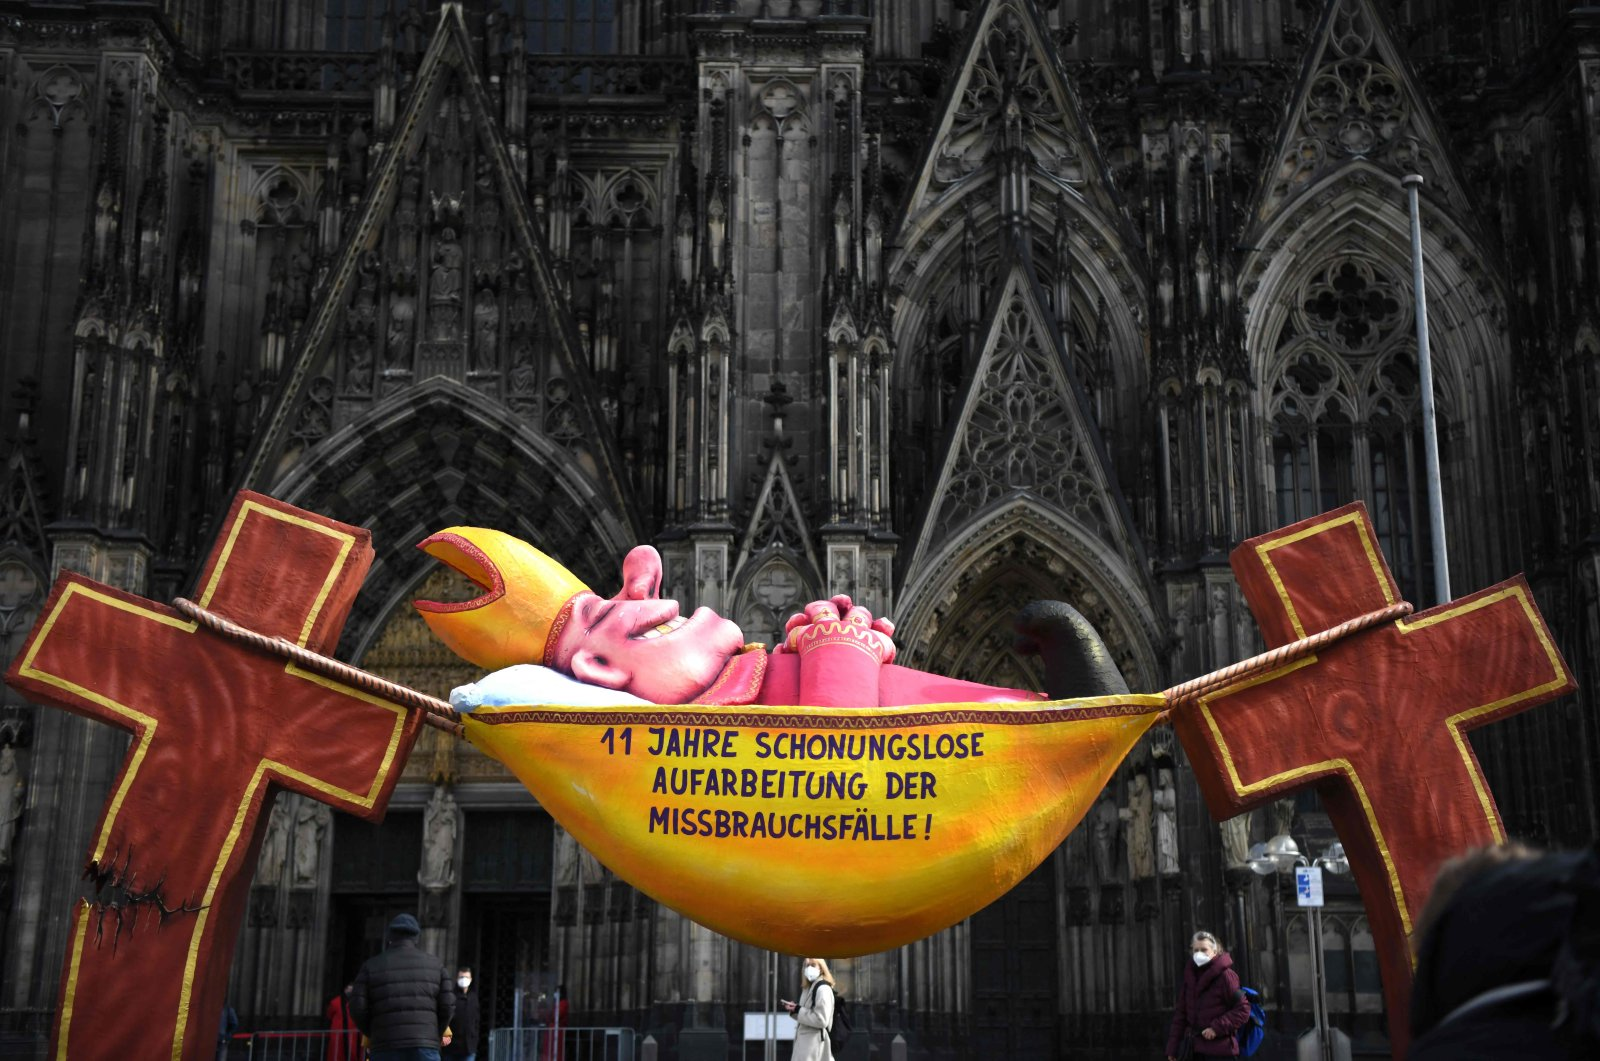 """A sculpture by artist Jacques Tilly with the slogan """"11 years of relentless investigation of the abuse cases!"""" is seen in front of the Cologne Cathedral in Cologne, western Germany, on March 18, 2021. (AFP Photo)"""